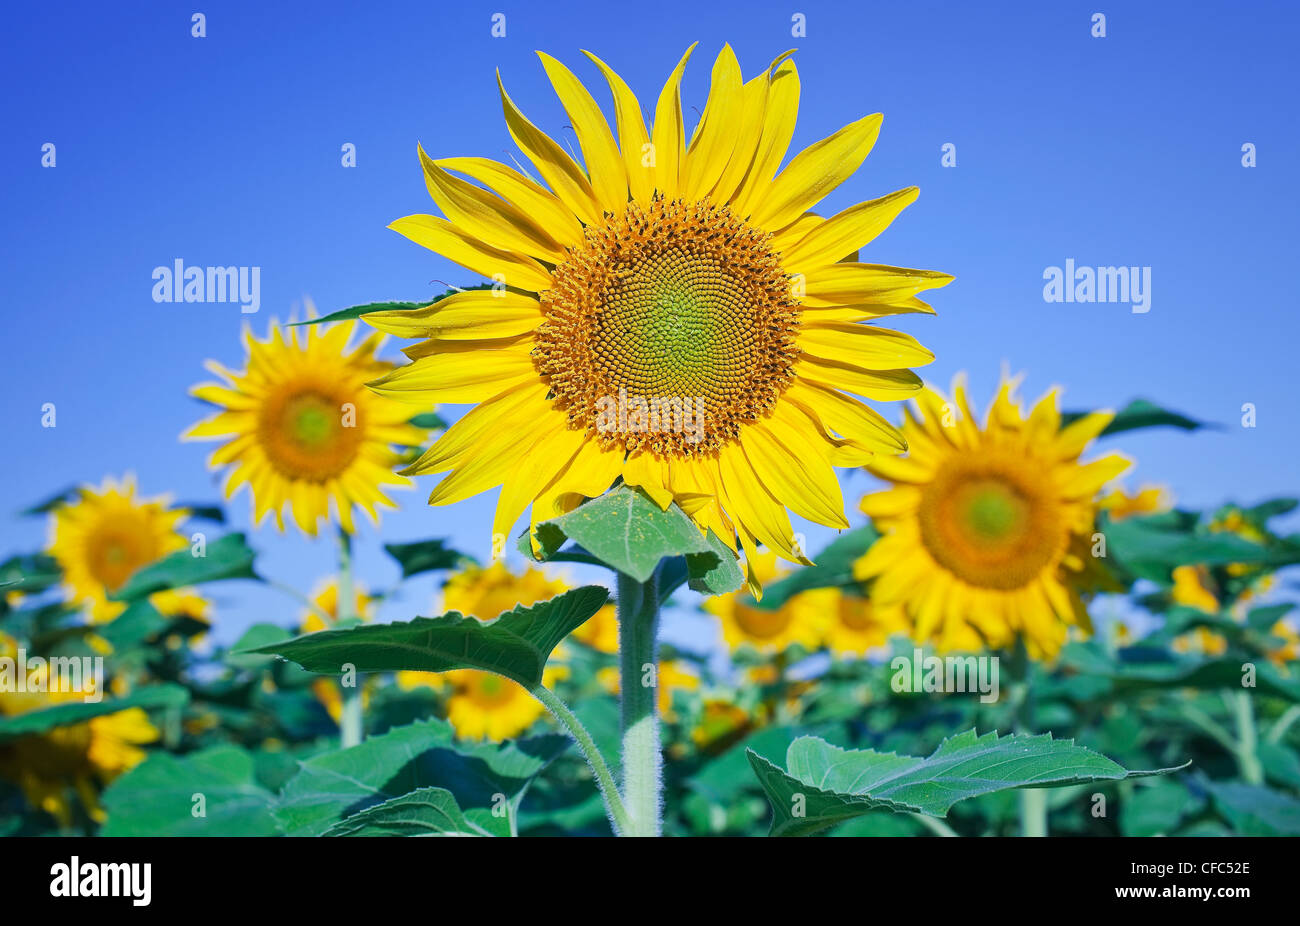 Sunflowers against clear blue sky, on the Canadian Prairie. Winnipeg, Manitoba, Canada. - Stock Image